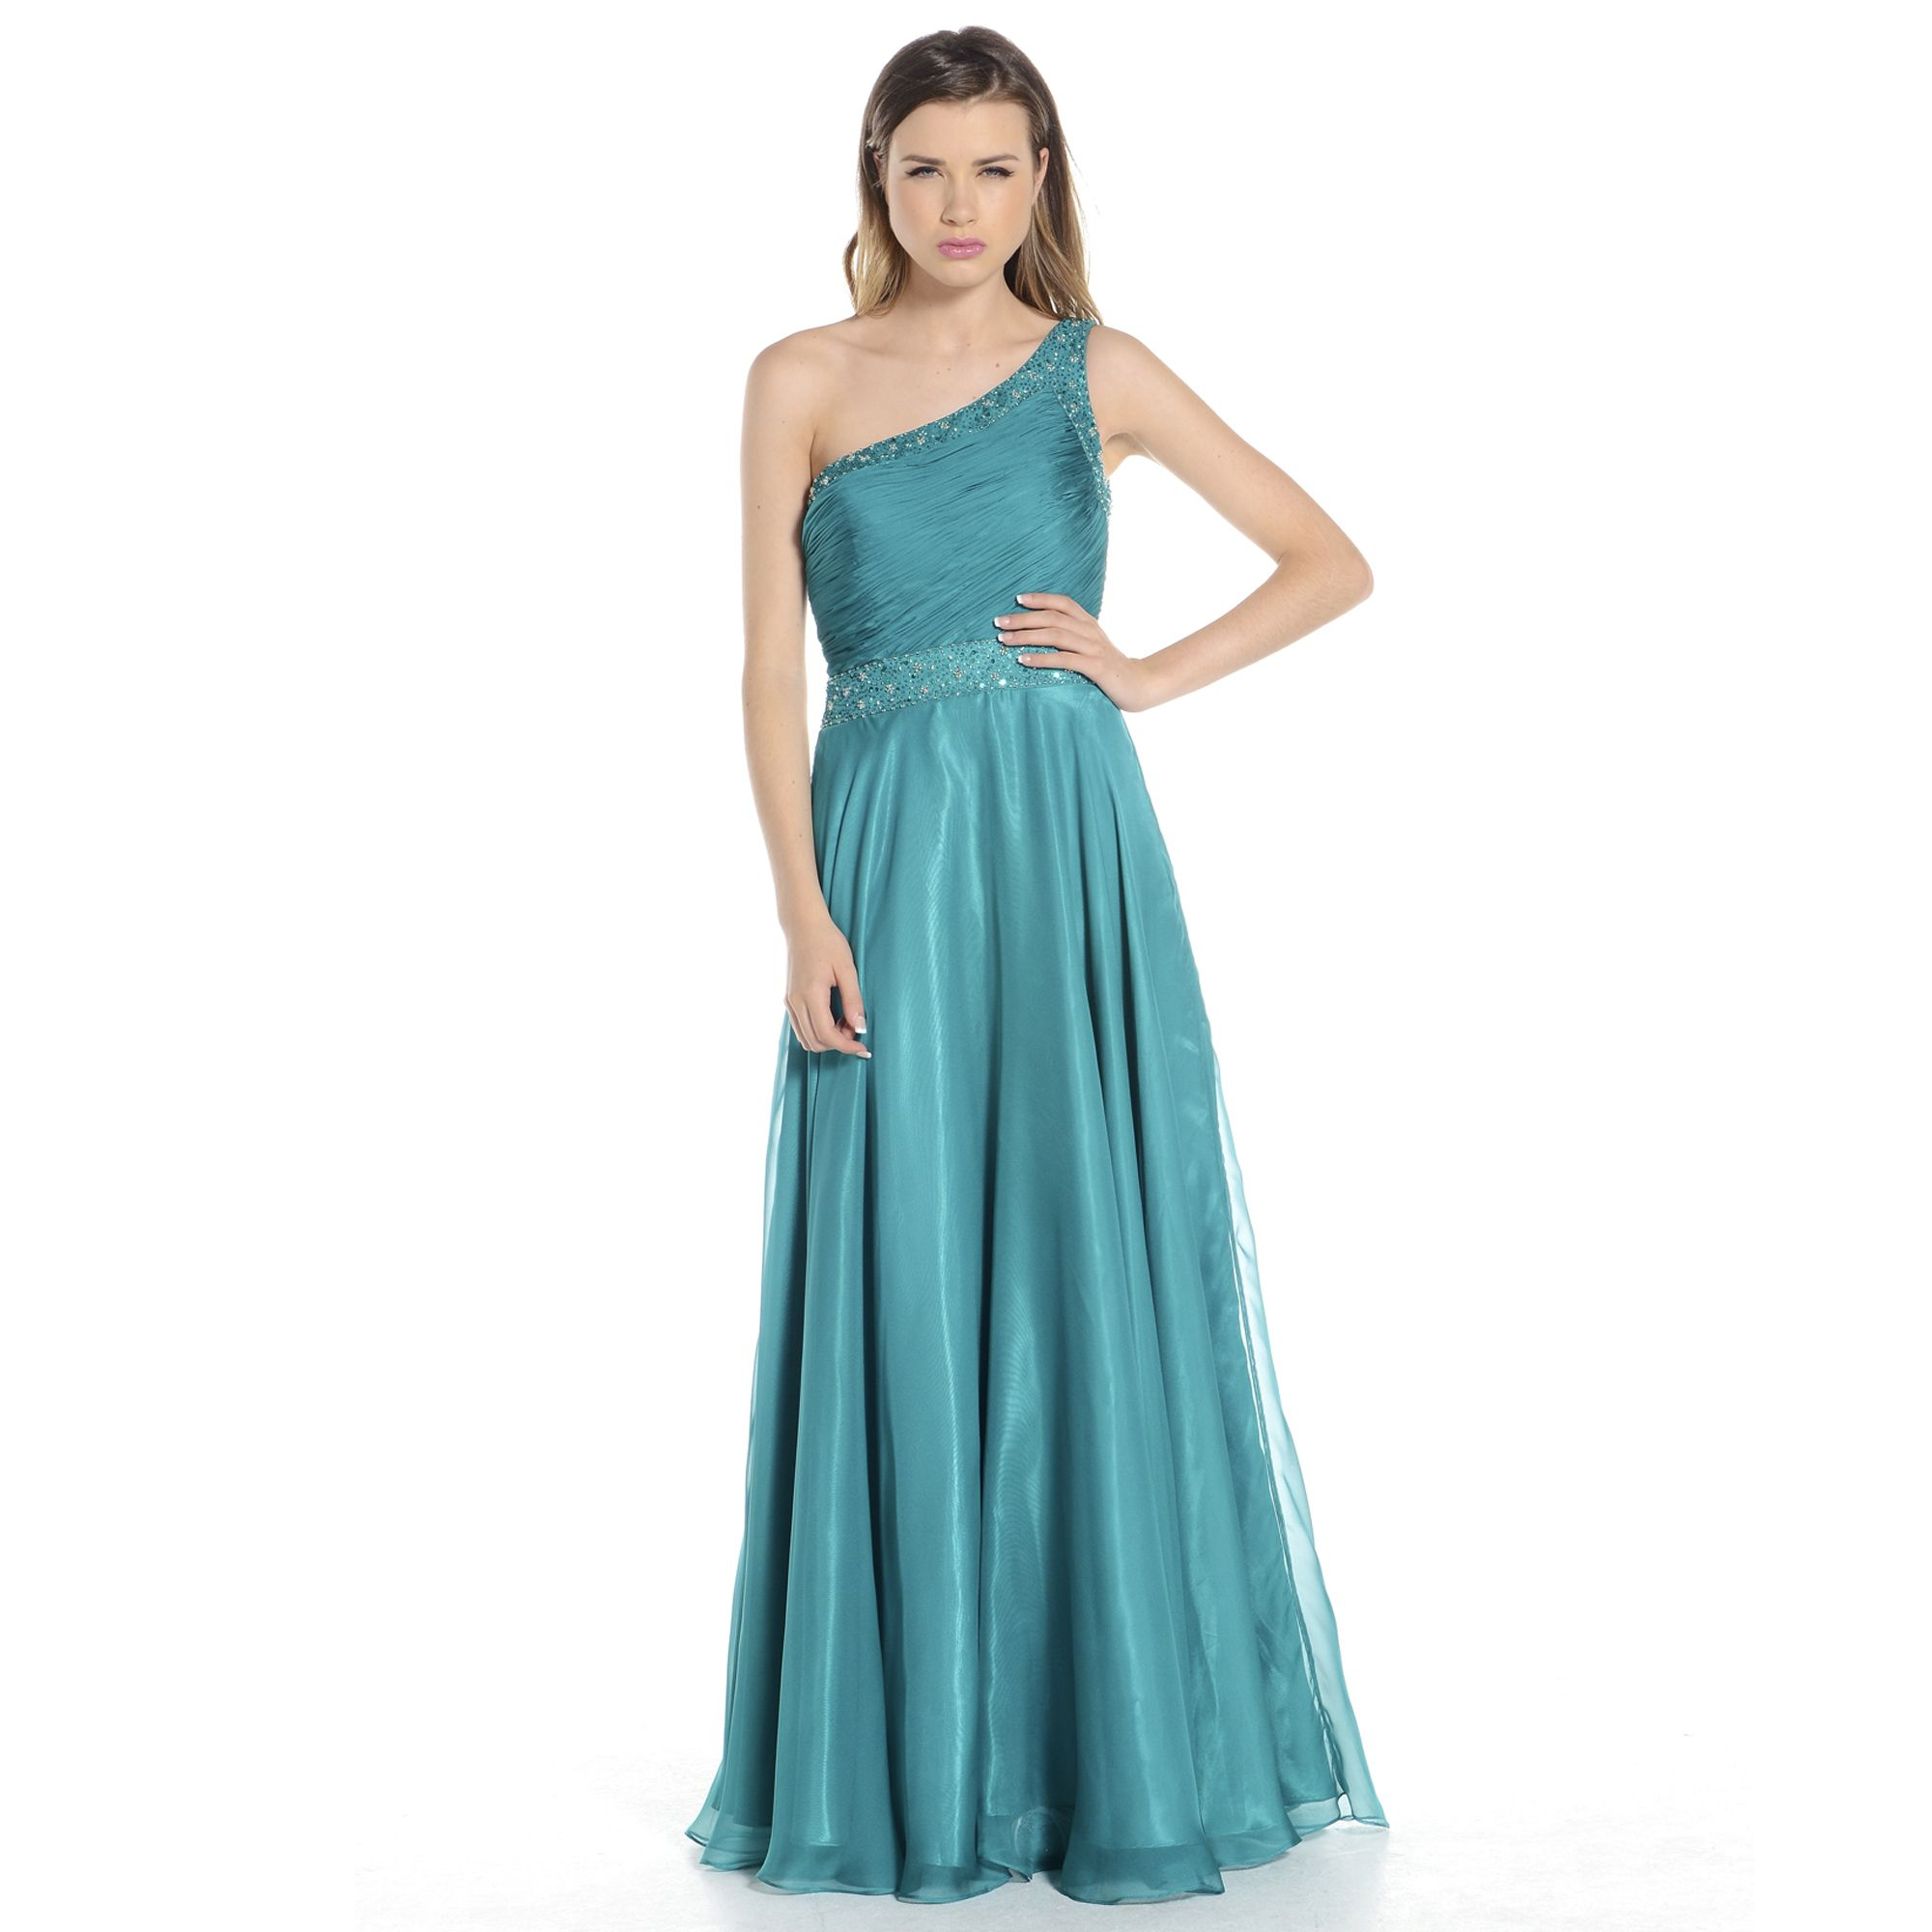 A beautiful backless Grecian style gown with diamante and sparkle ...